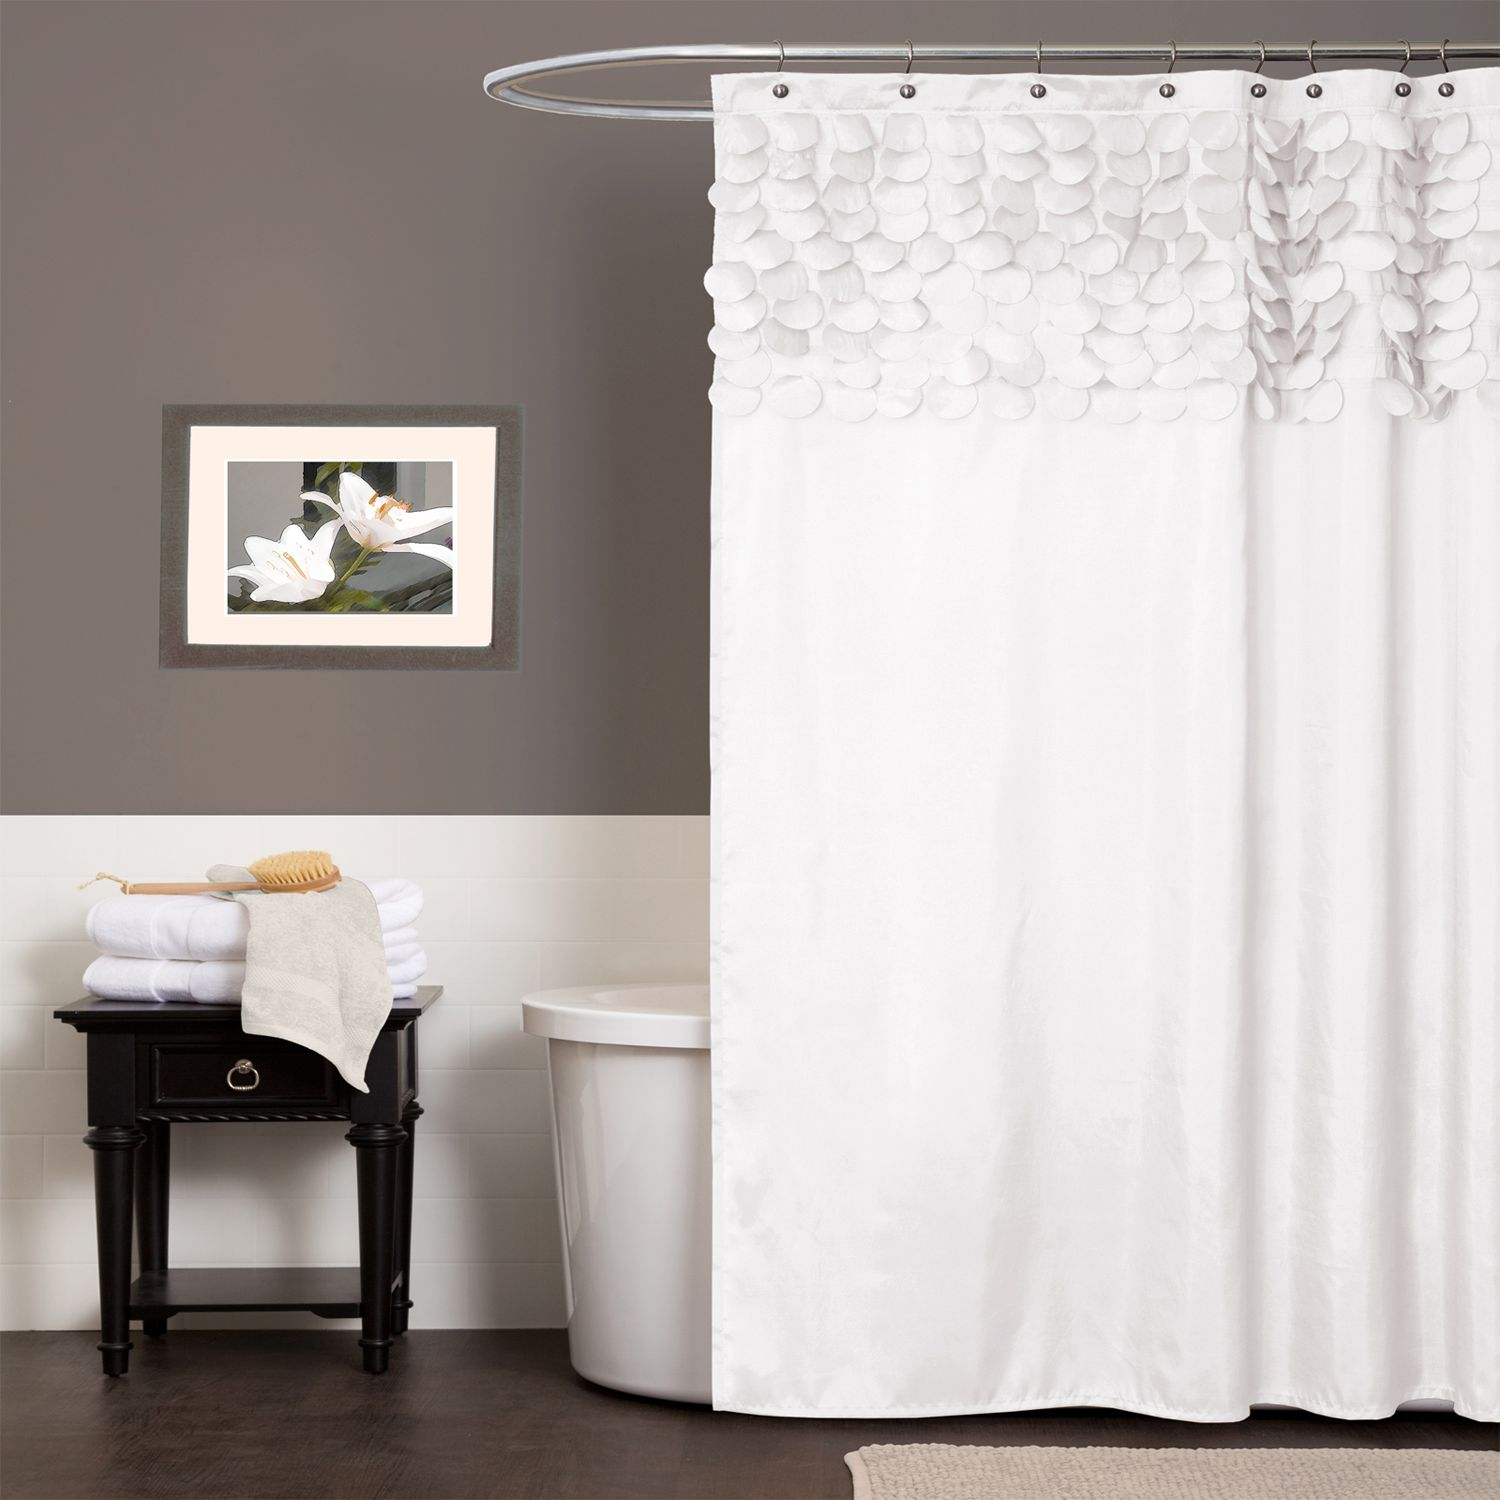 Hookless fabric shower curtain with built in liner taupe diamond pique - White Shower Curtains Fabric Part 15 Lush Decor Lillian Fabric Shower Curtain